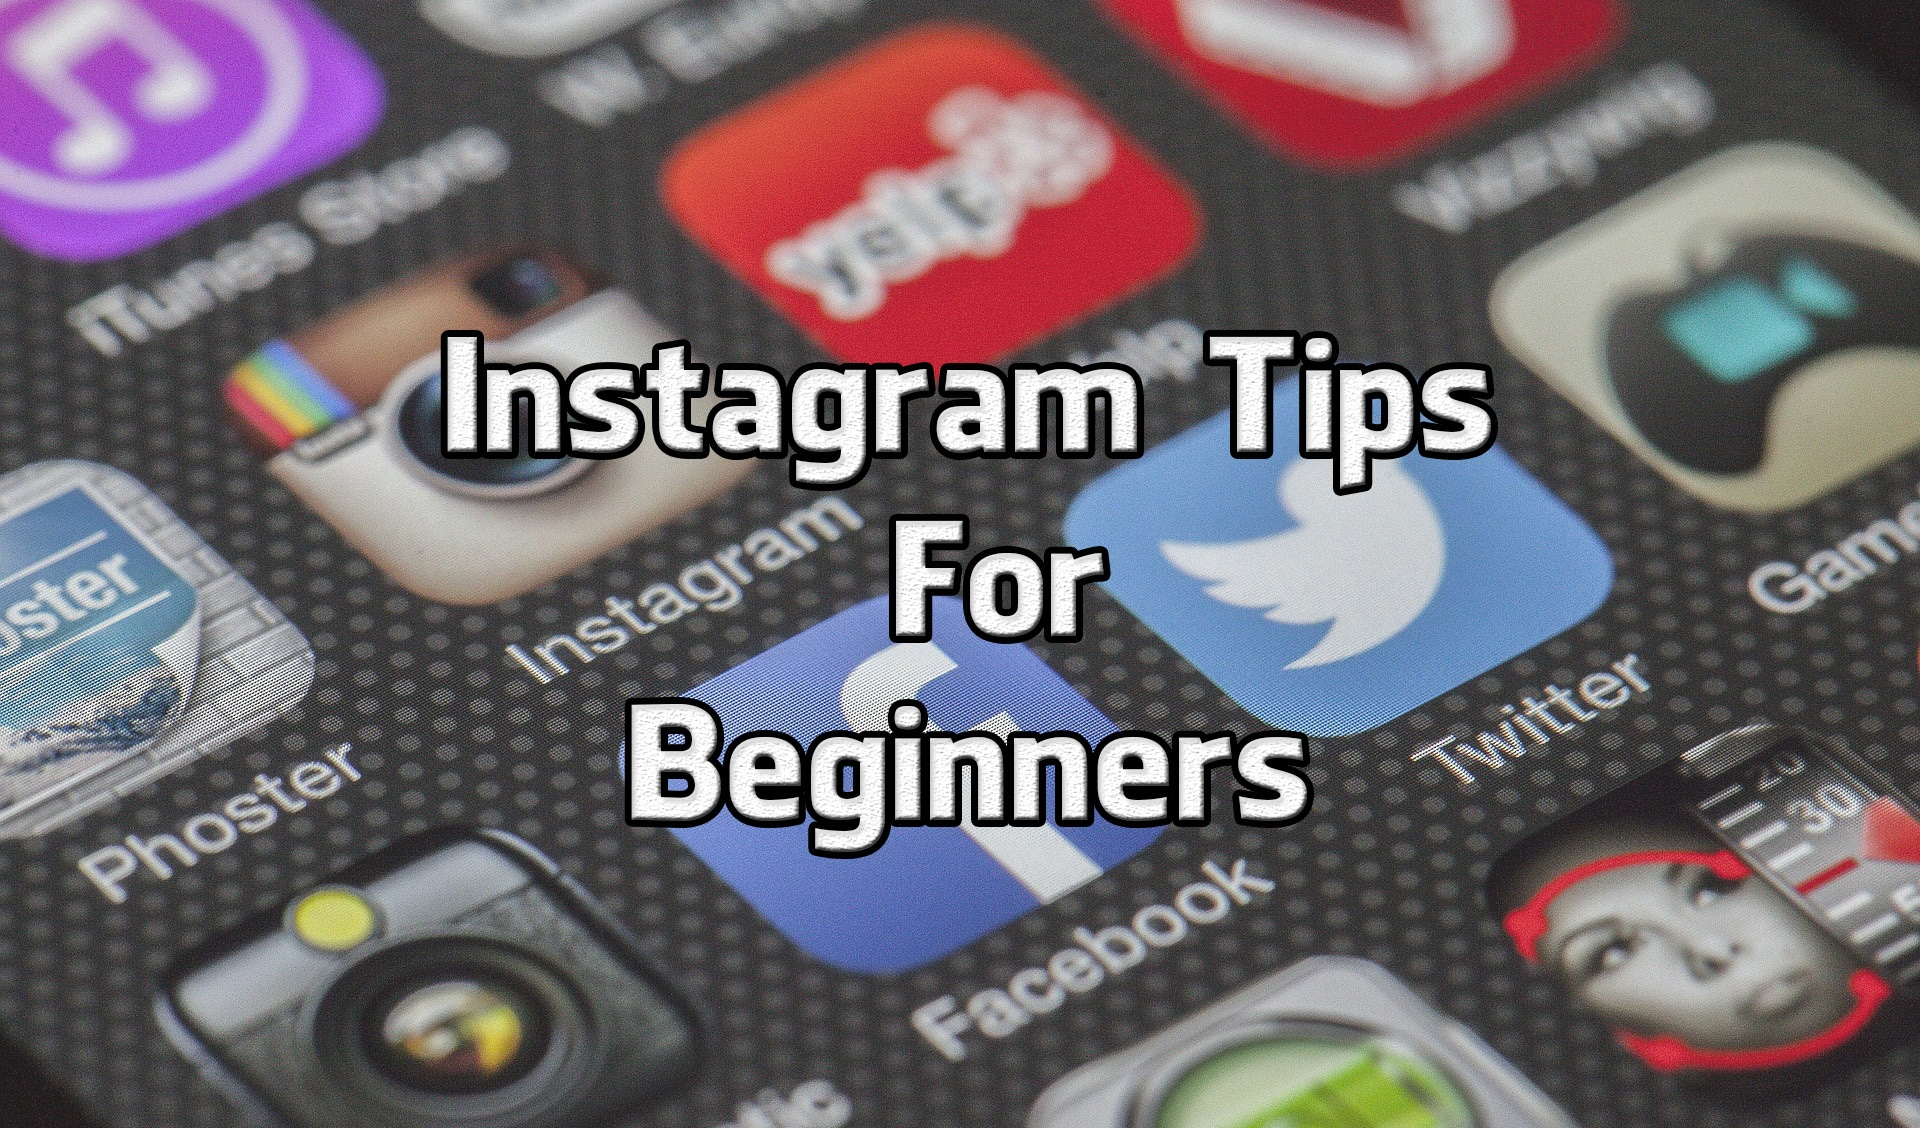 Instagram Tips For Beginners